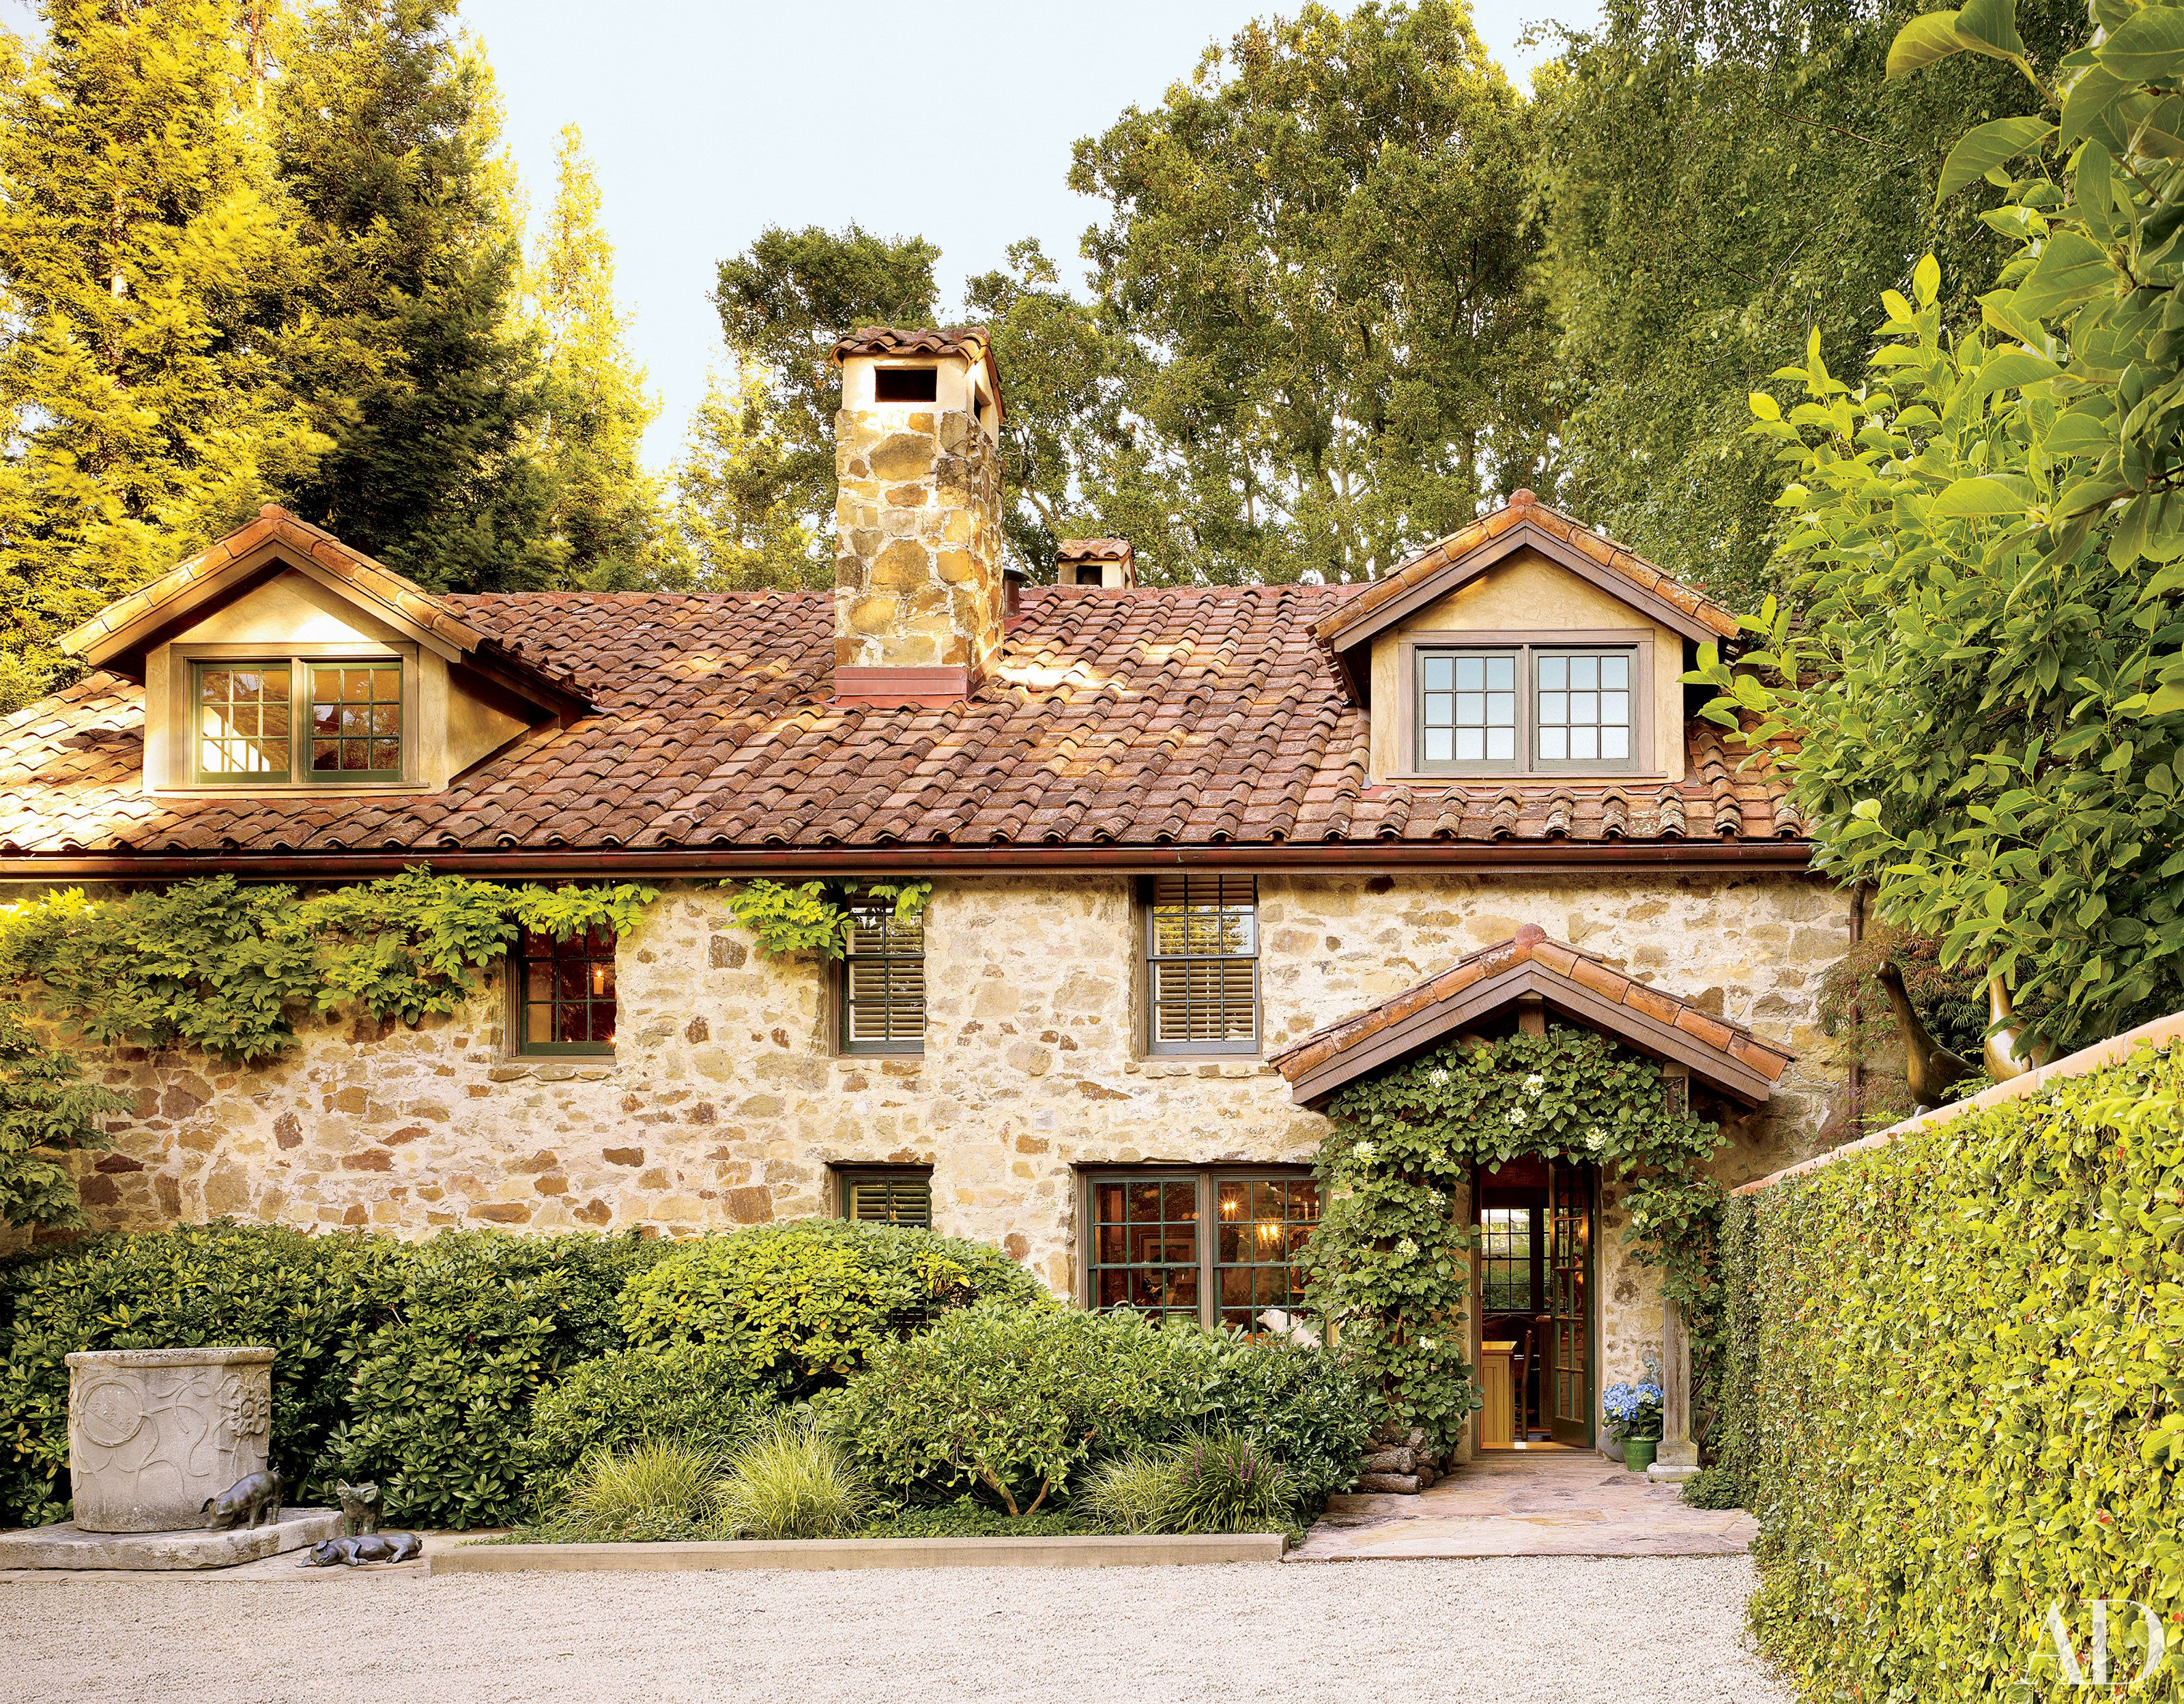 24 California Home Designs That Will Make You Consider ...